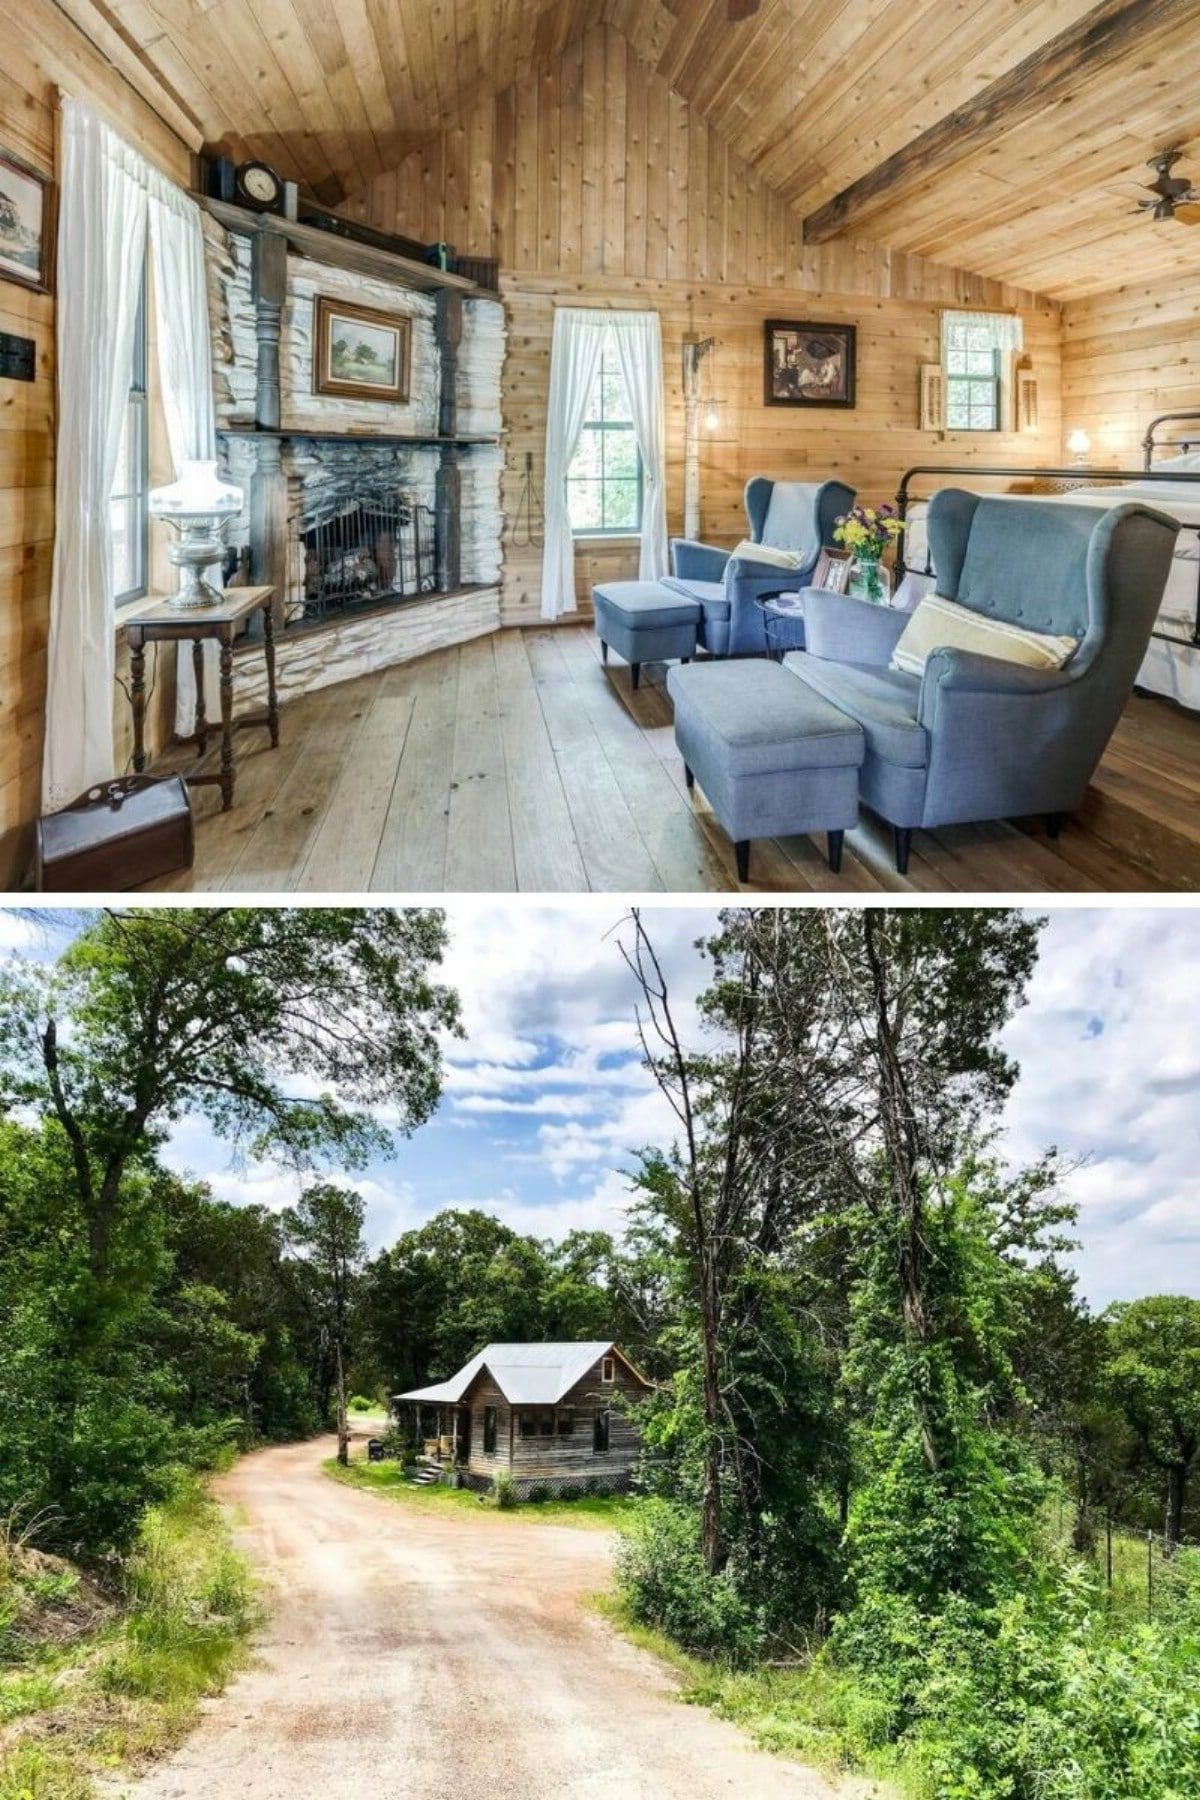 Dilly Dally Cabin – Granbury, TX